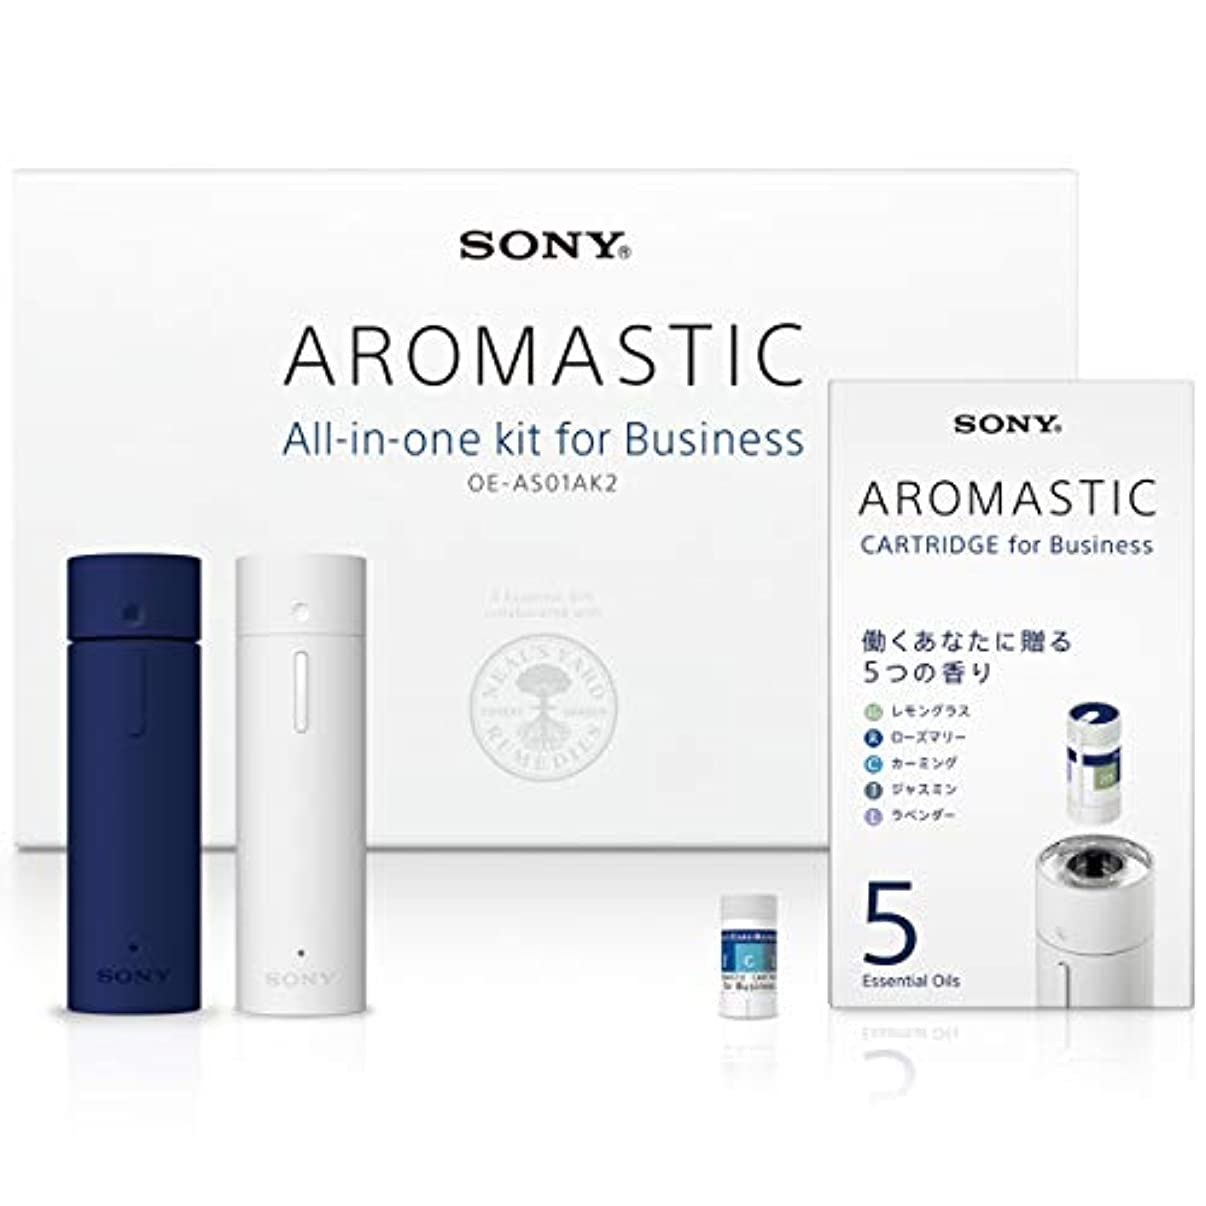 機械的に比較的面白いAROMASTIC All-in-one kit for Business (オールインワンキット for Business) OE-AS01AK2